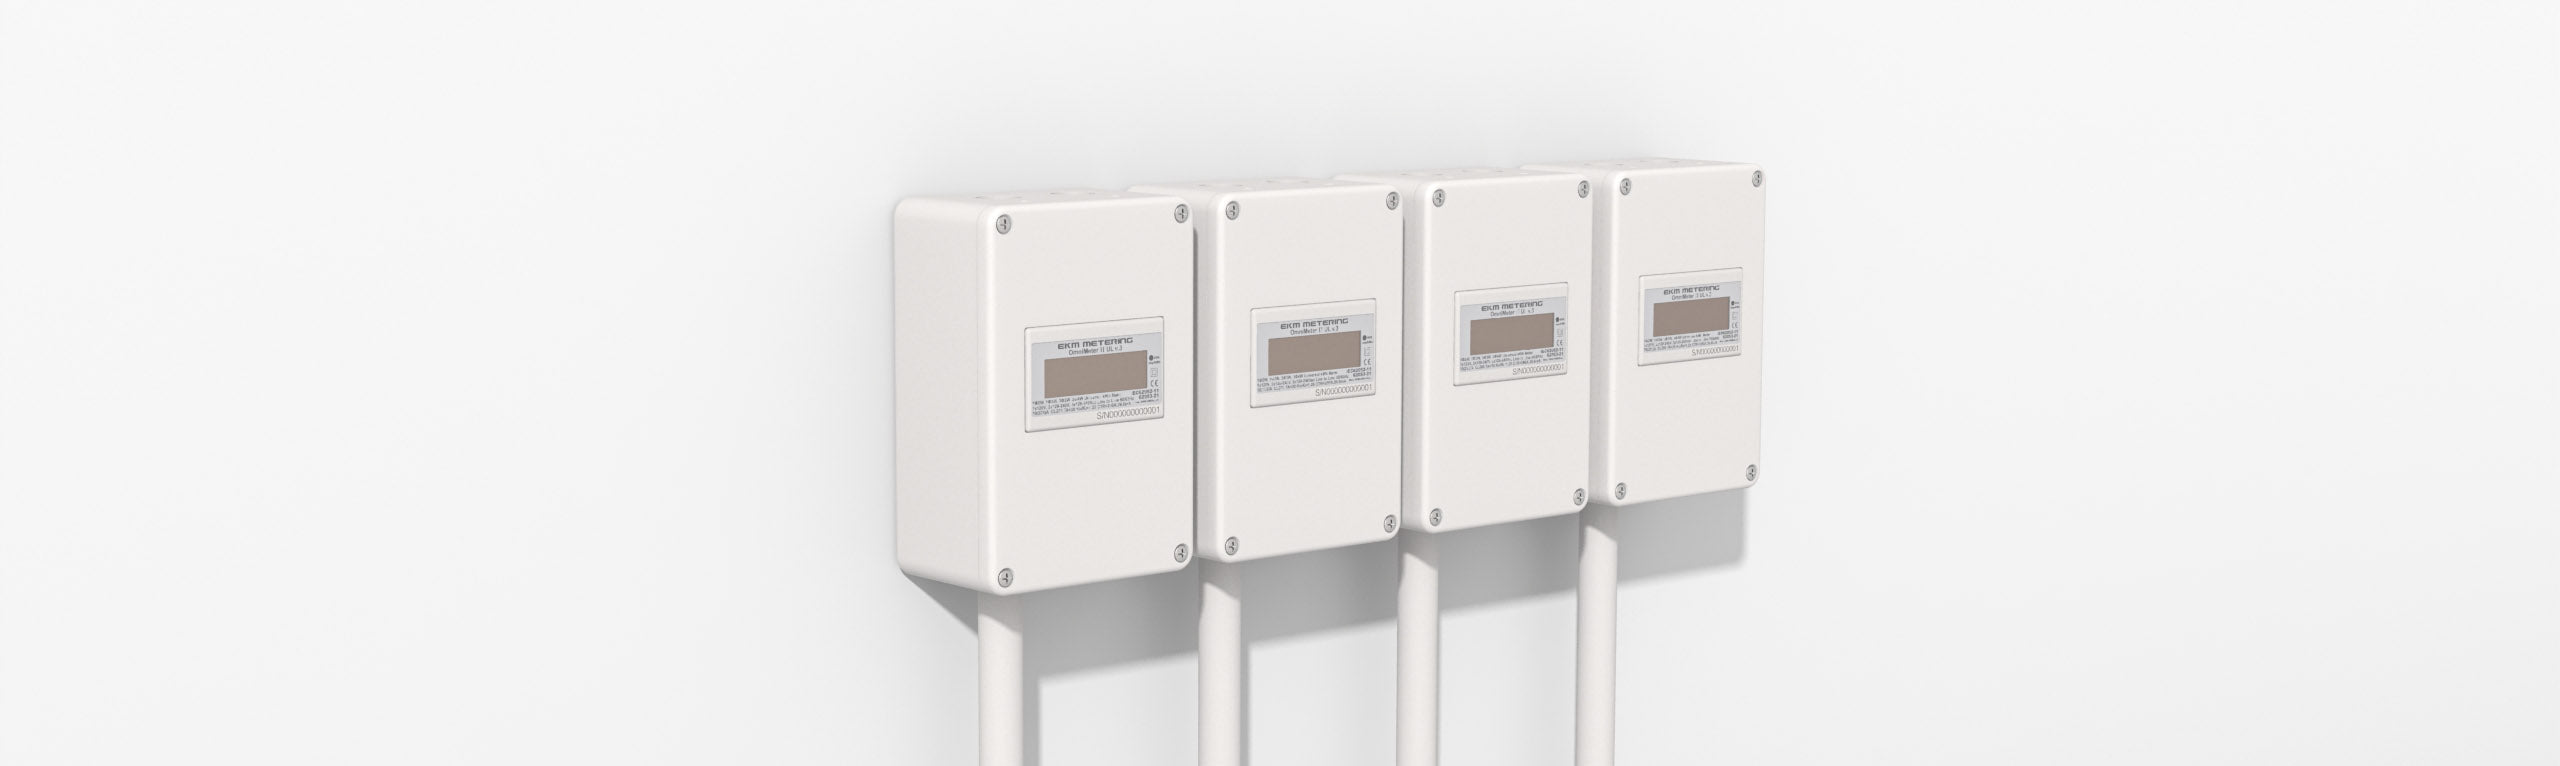 Four EKM meters in enclosures